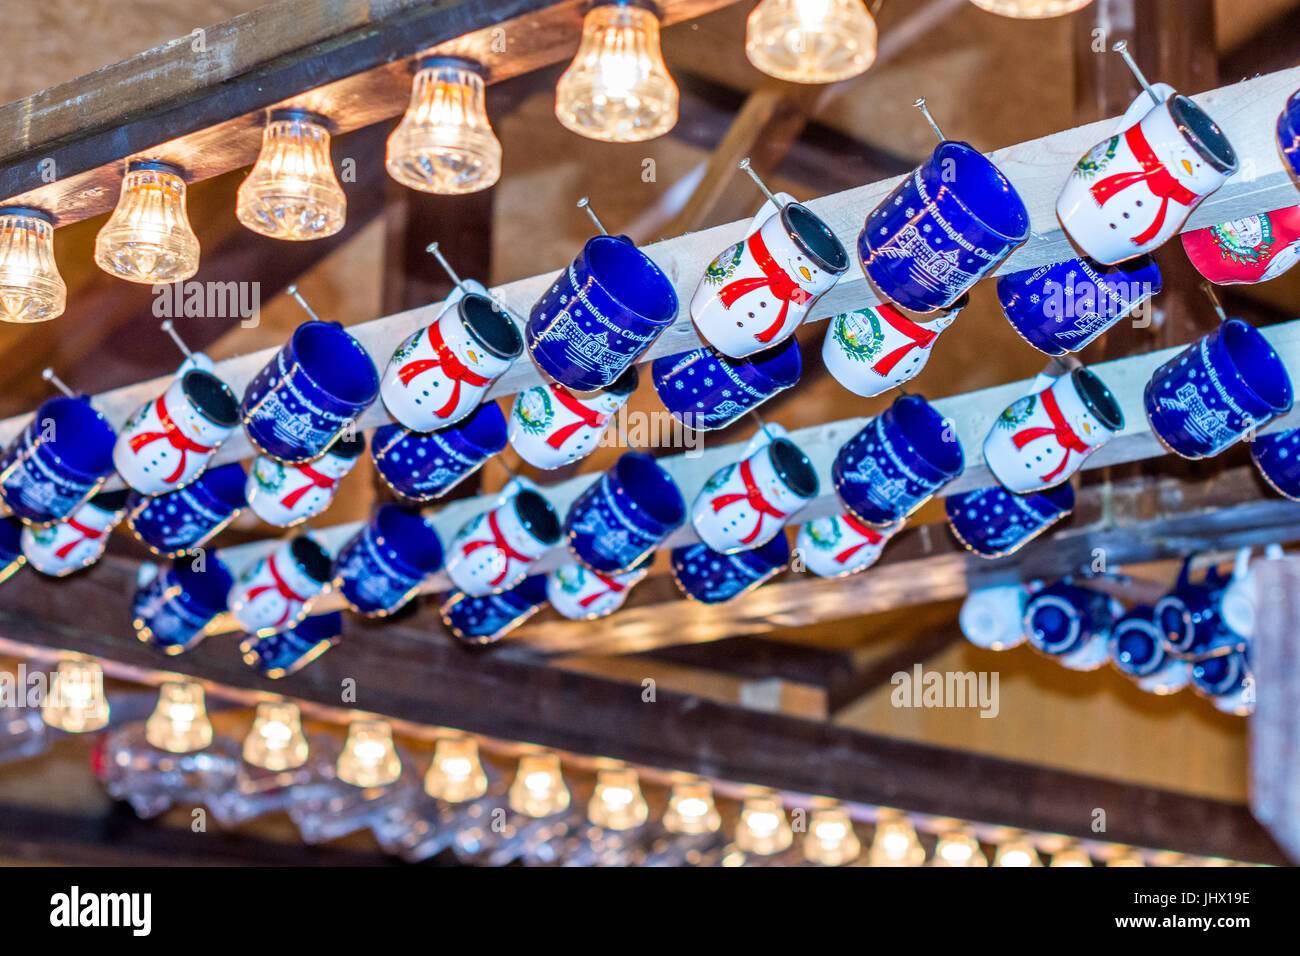 Christmas German Market - mulled wine cups in Market Stall. Stock Photo